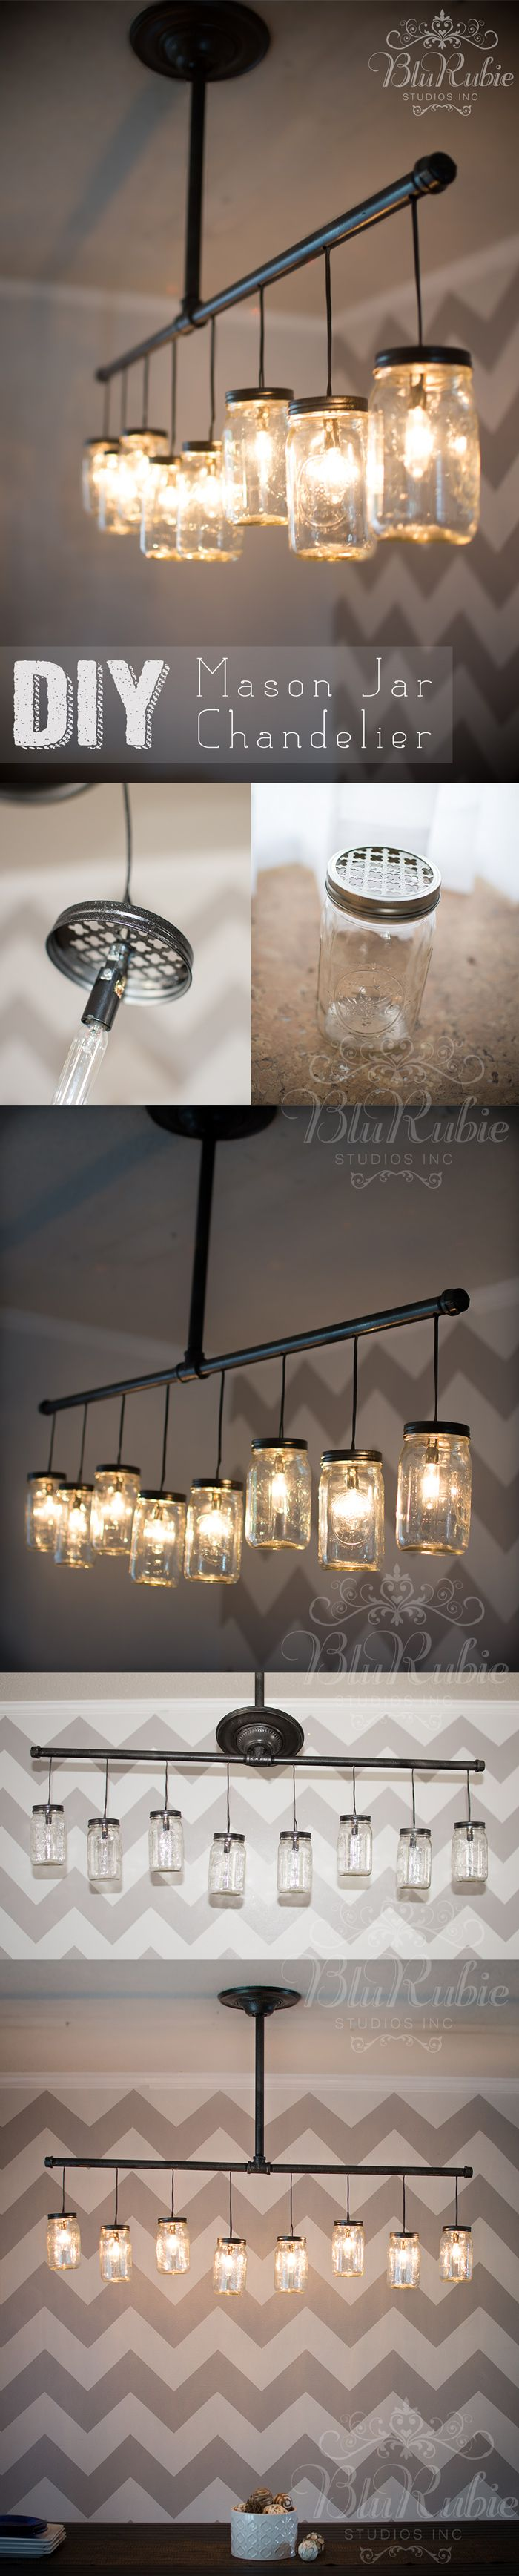 Pensacola photography and design blurubie studios diy mason jar pensacola photography and design blurubie studios diy mason jar chandelier arubaitofo Image collections